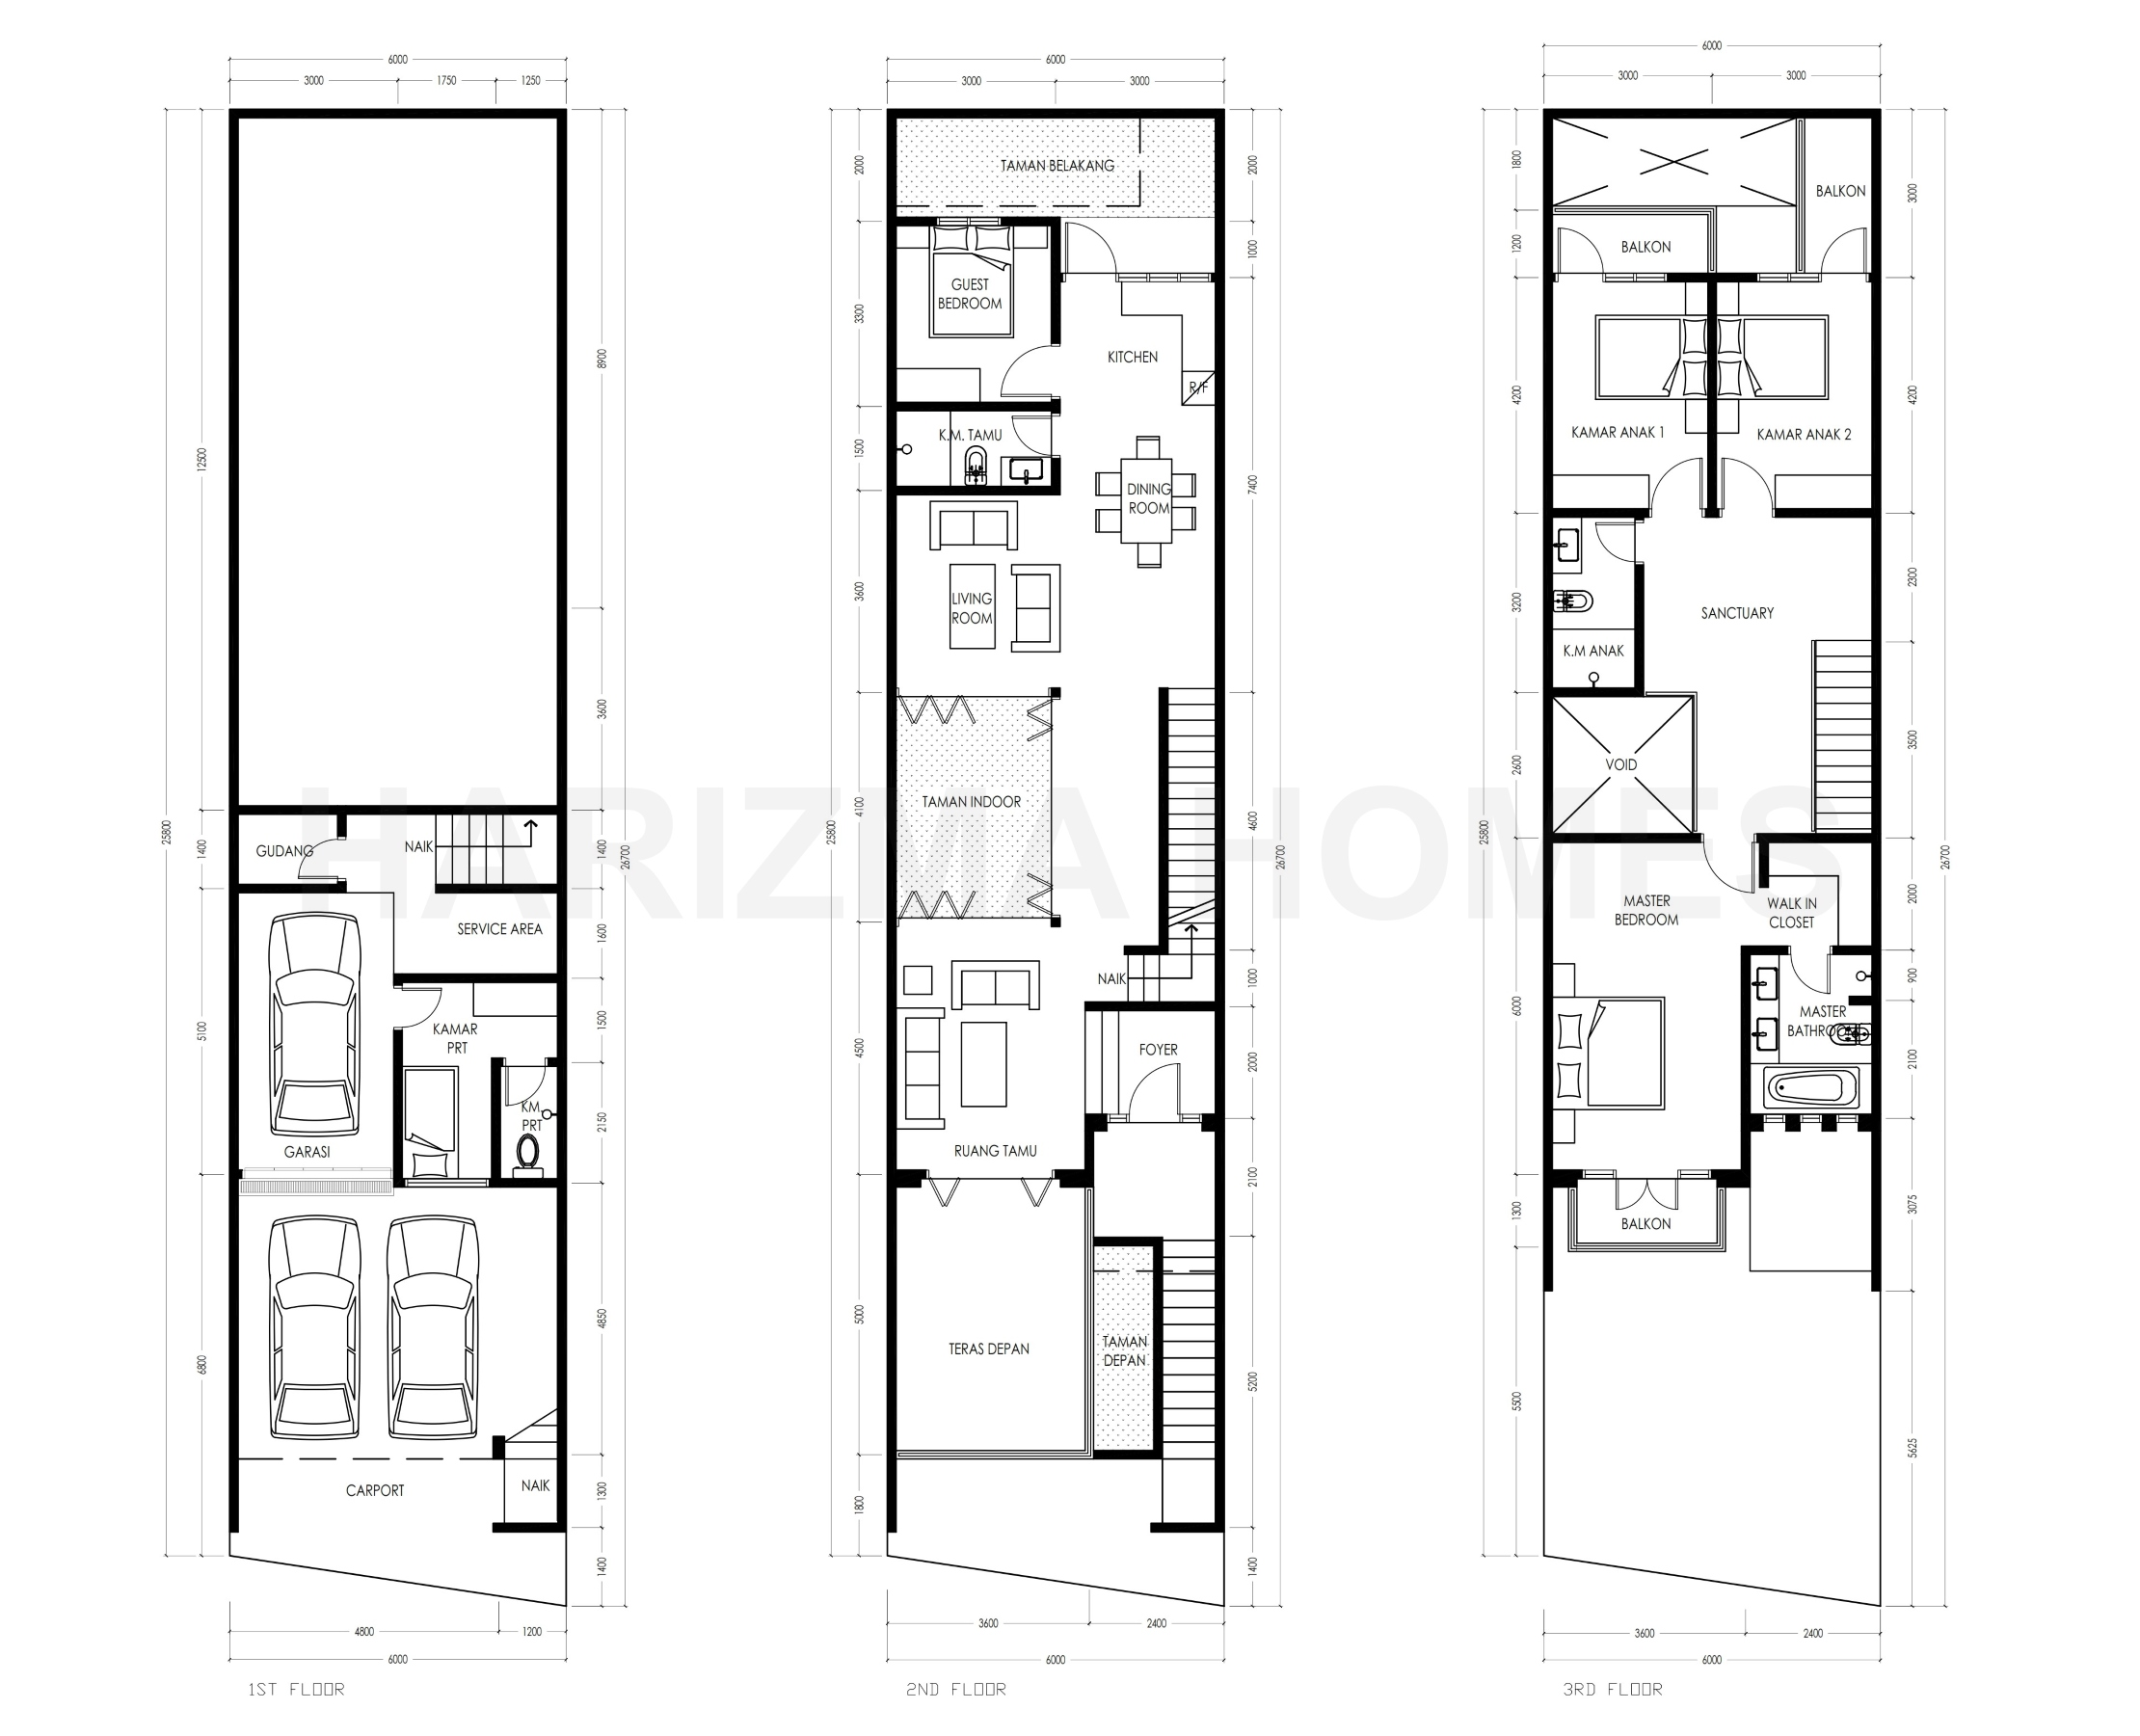 Layout Astoria_Mark (2)